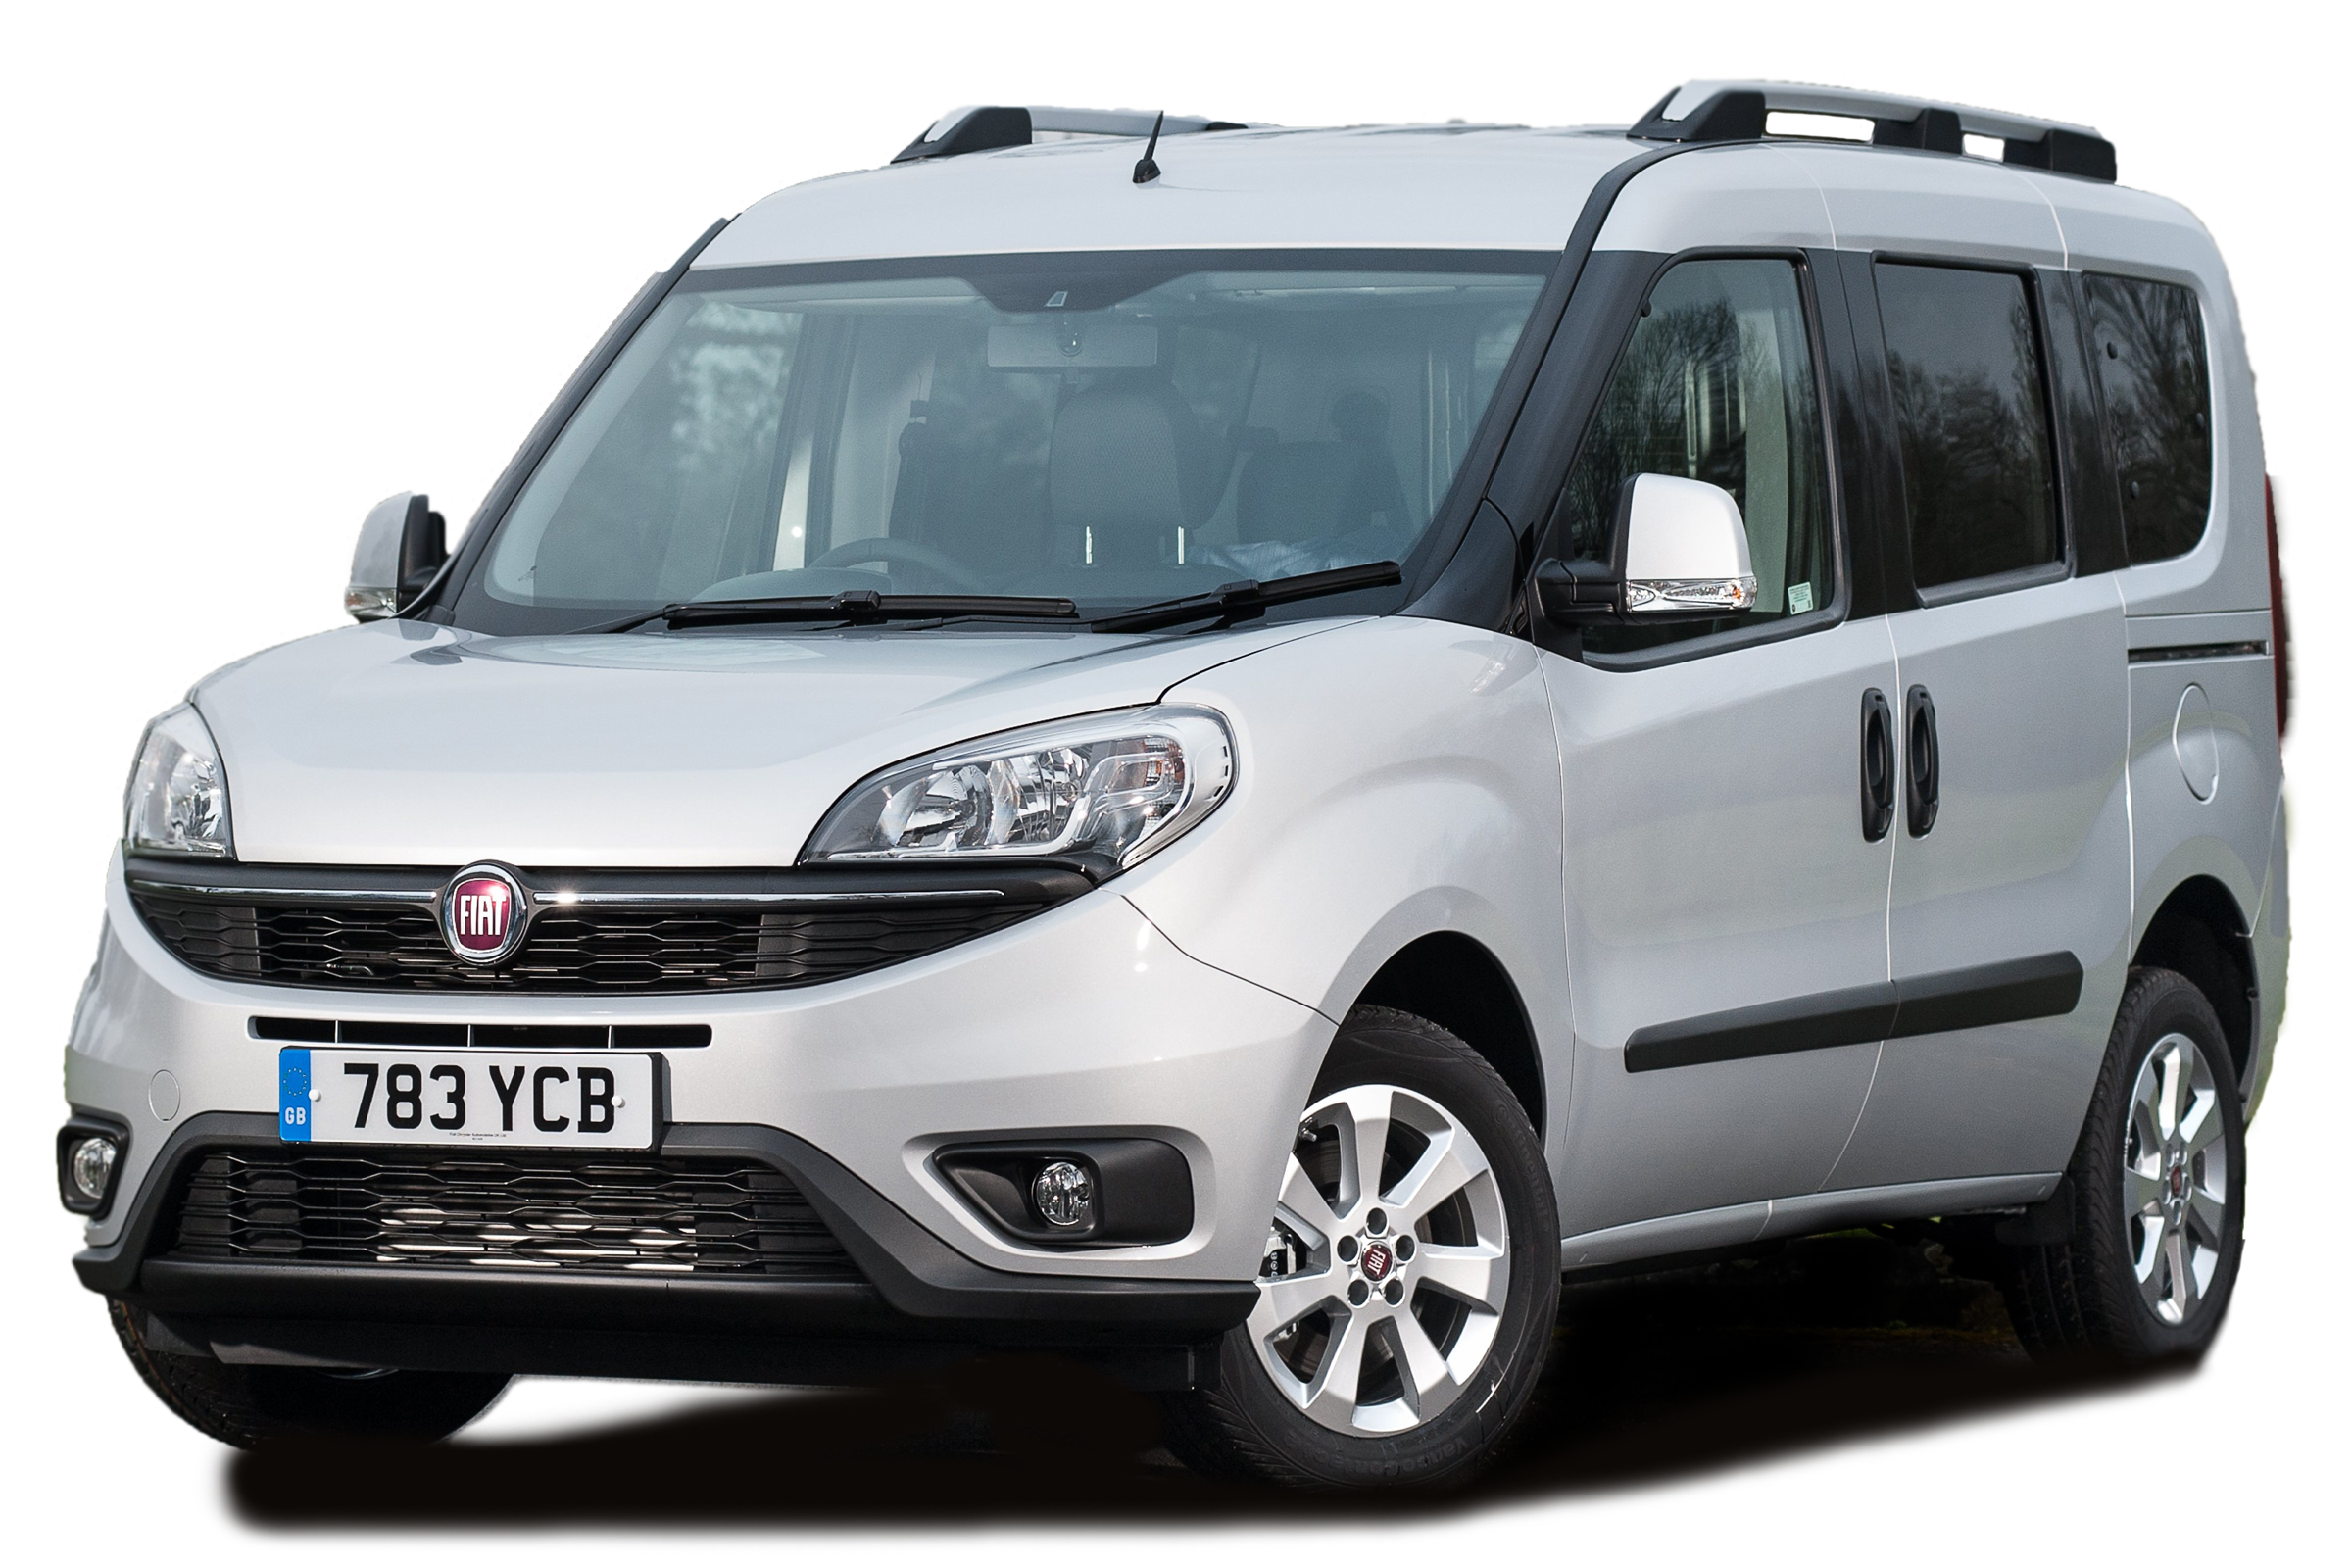 Fiat Doblo Owner Reviews Mpg Problems Reliability 2020 Review Carbuyer